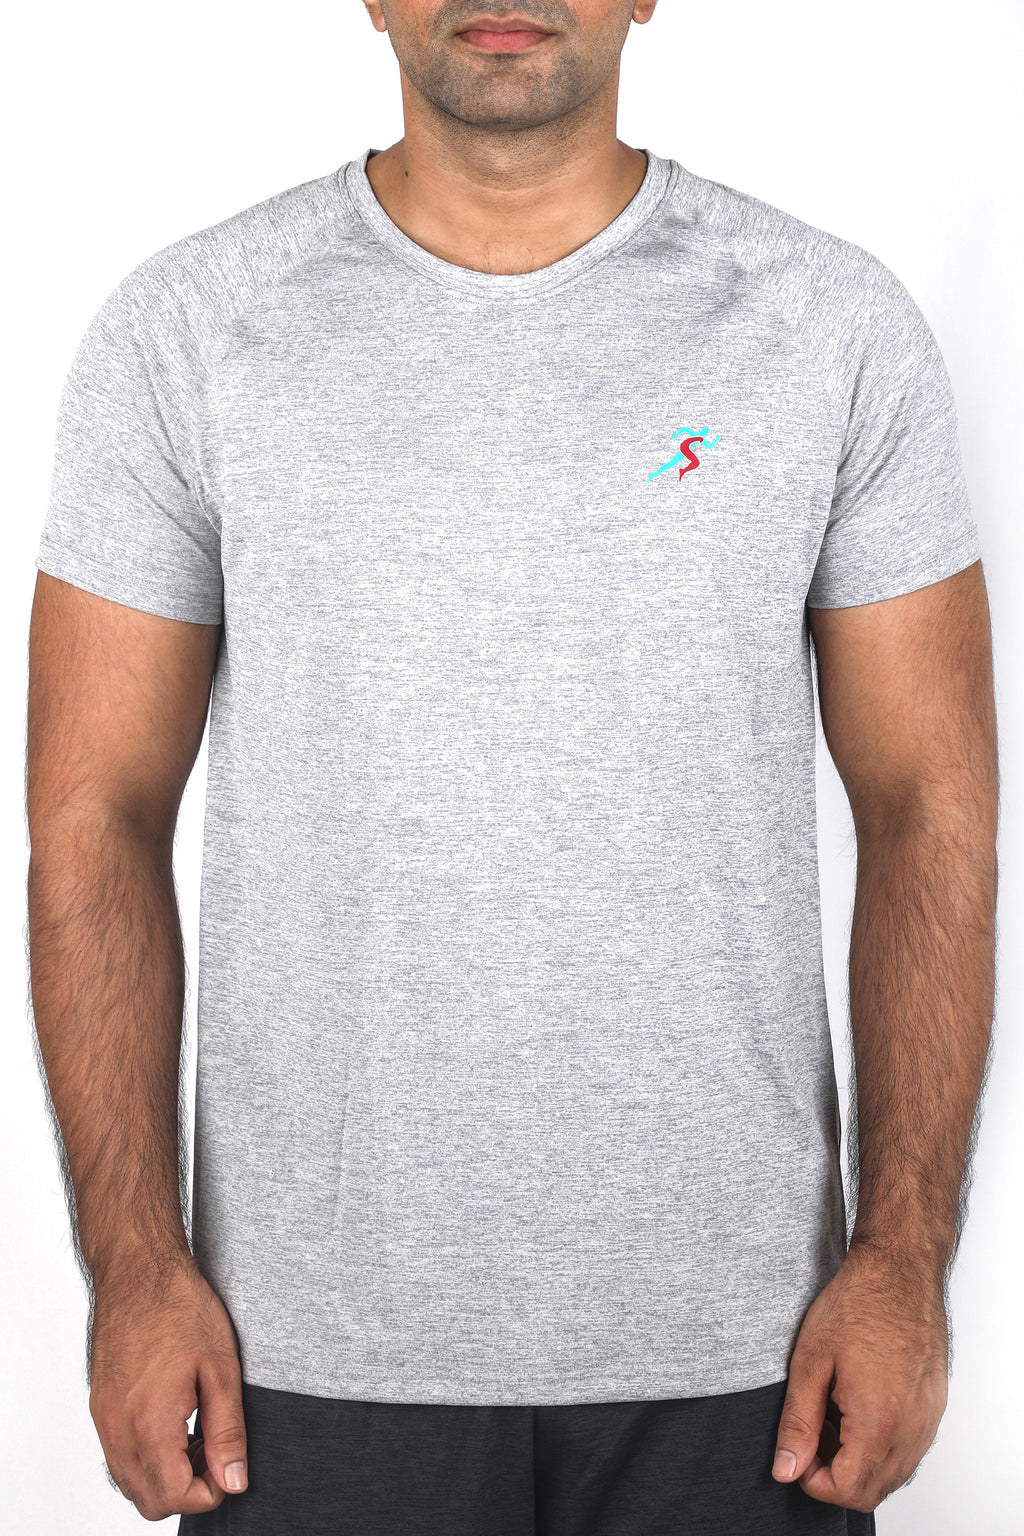 Grit Gym T-Shirt For Men - Grey Melange